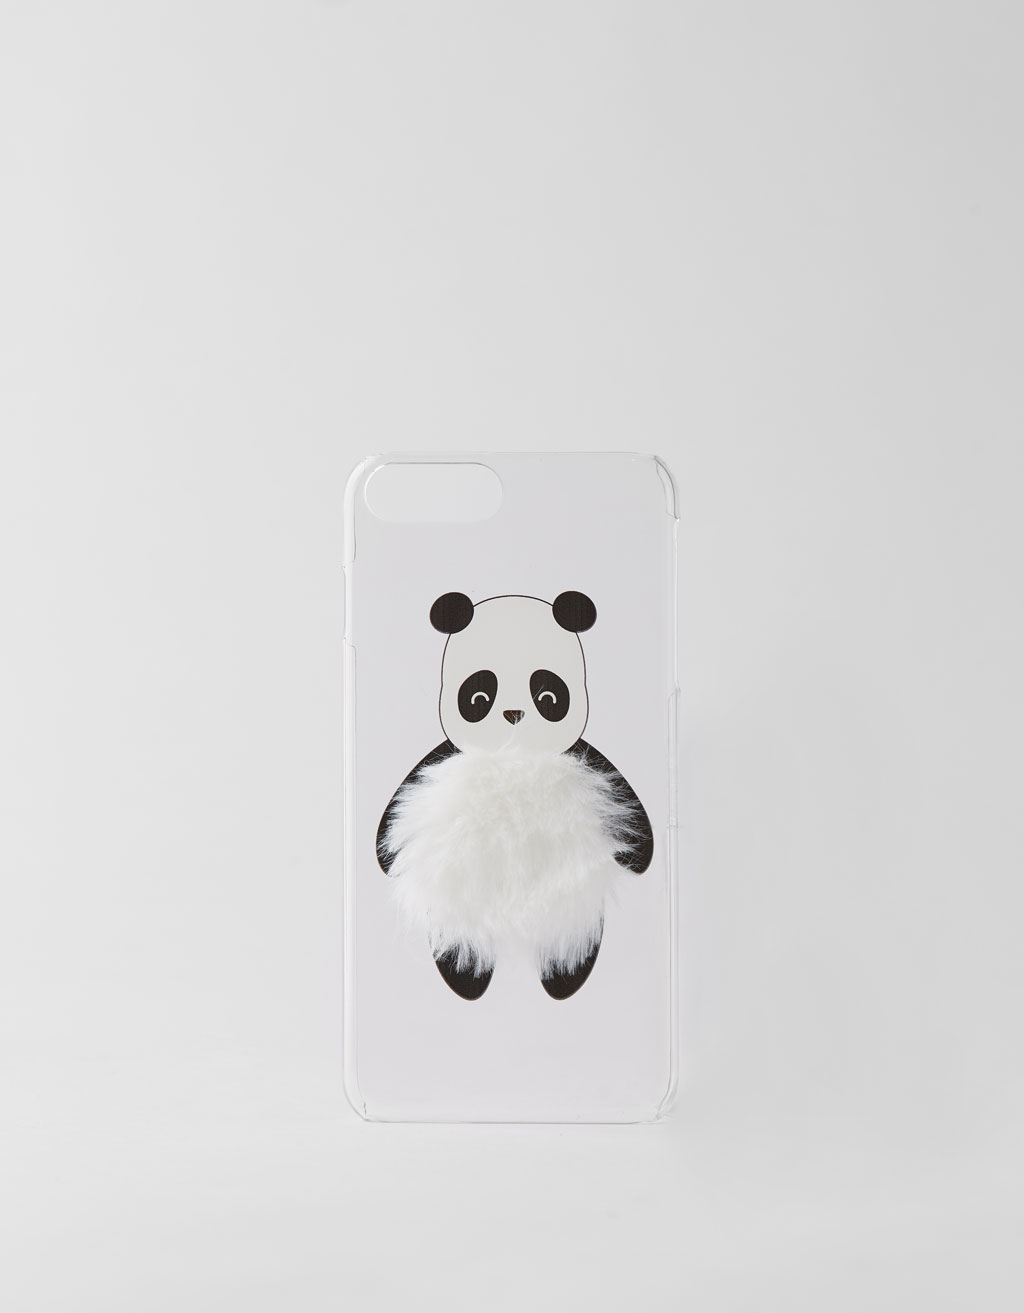 Cover Panda iPhone 6 plus / 7 plus / 8 plus